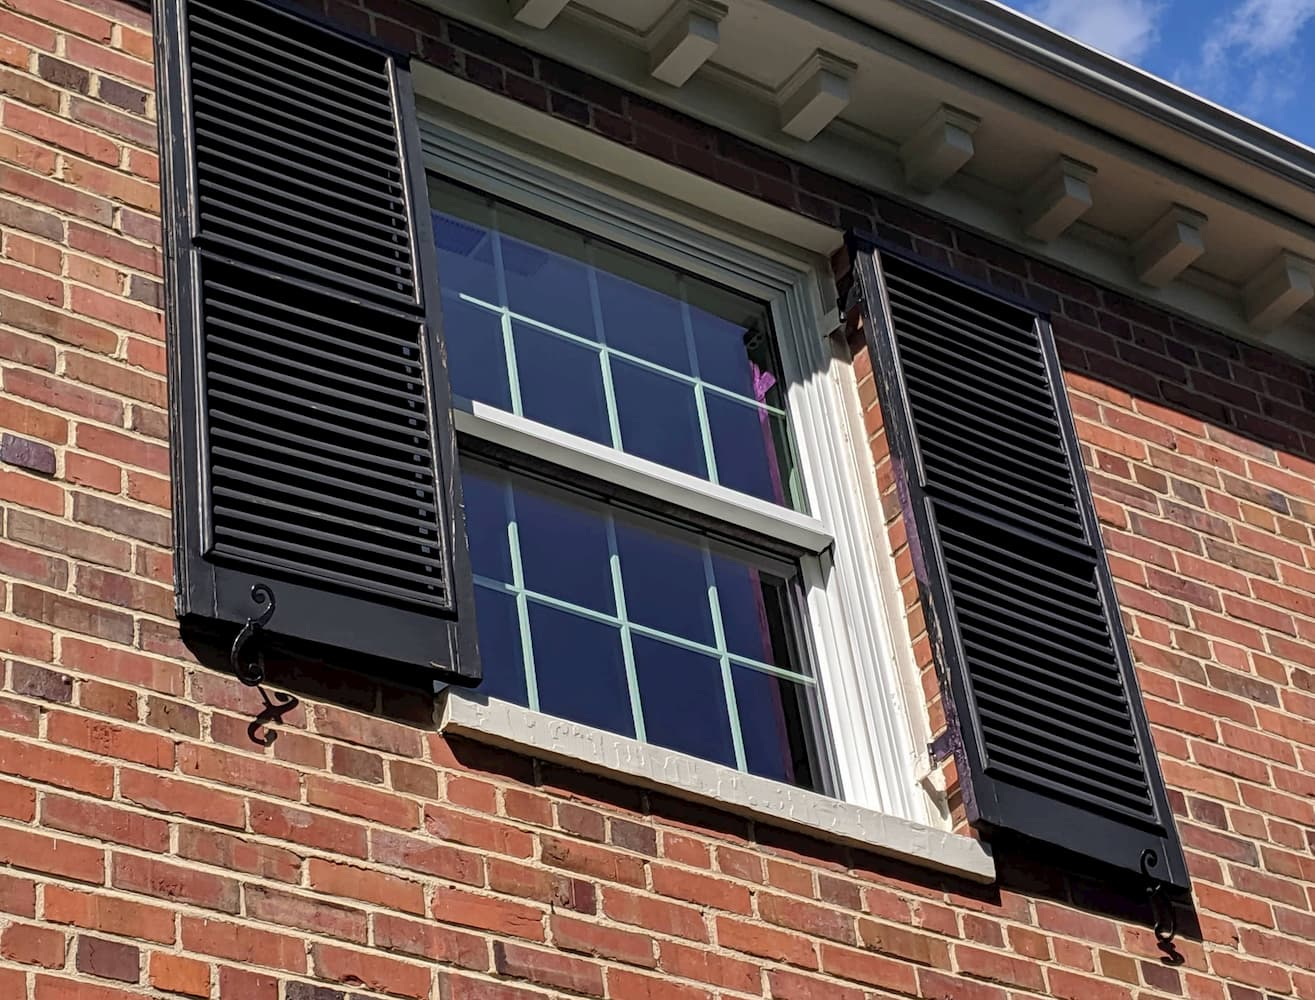 Wood double-hung window with traditional grille pattern on second story.